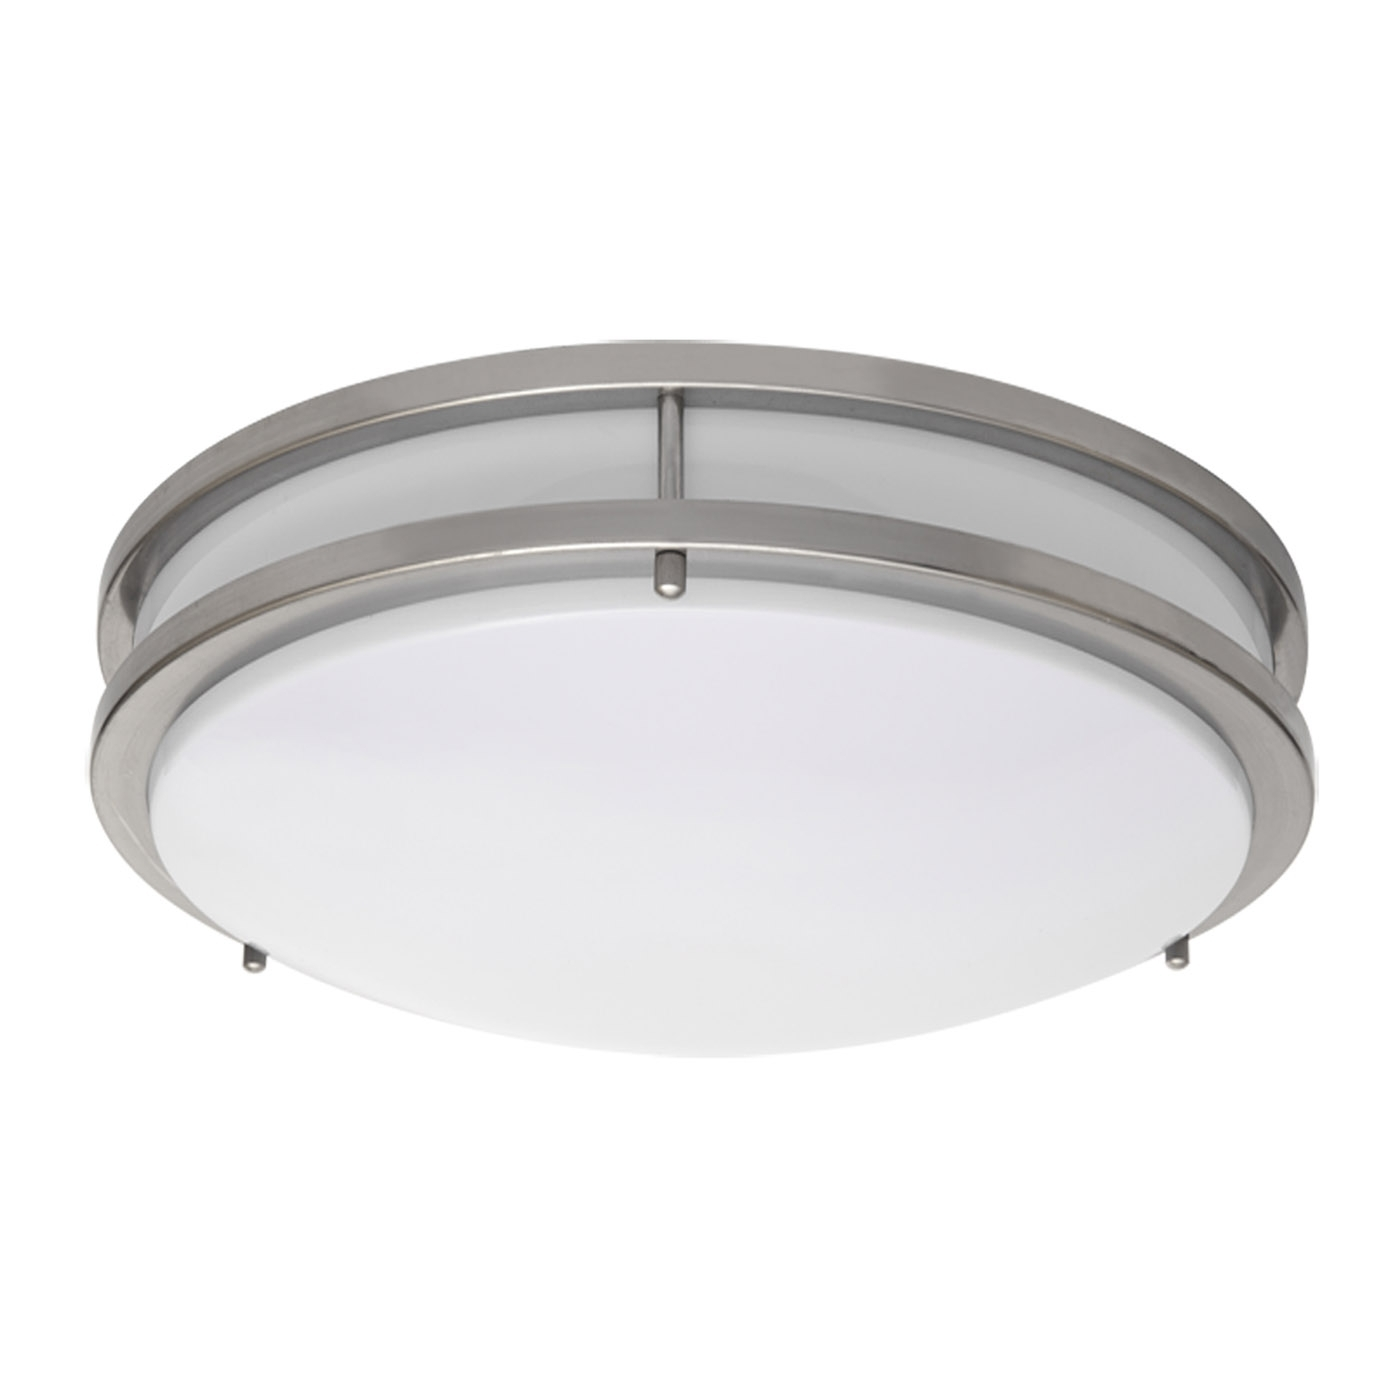 Outdoor Ceiling Mount Led Lights Pertaining To Most Popular Light : Led Ceiling Light Fixture Amax Lighting Fixtures Two Ring (View 10 of 20)